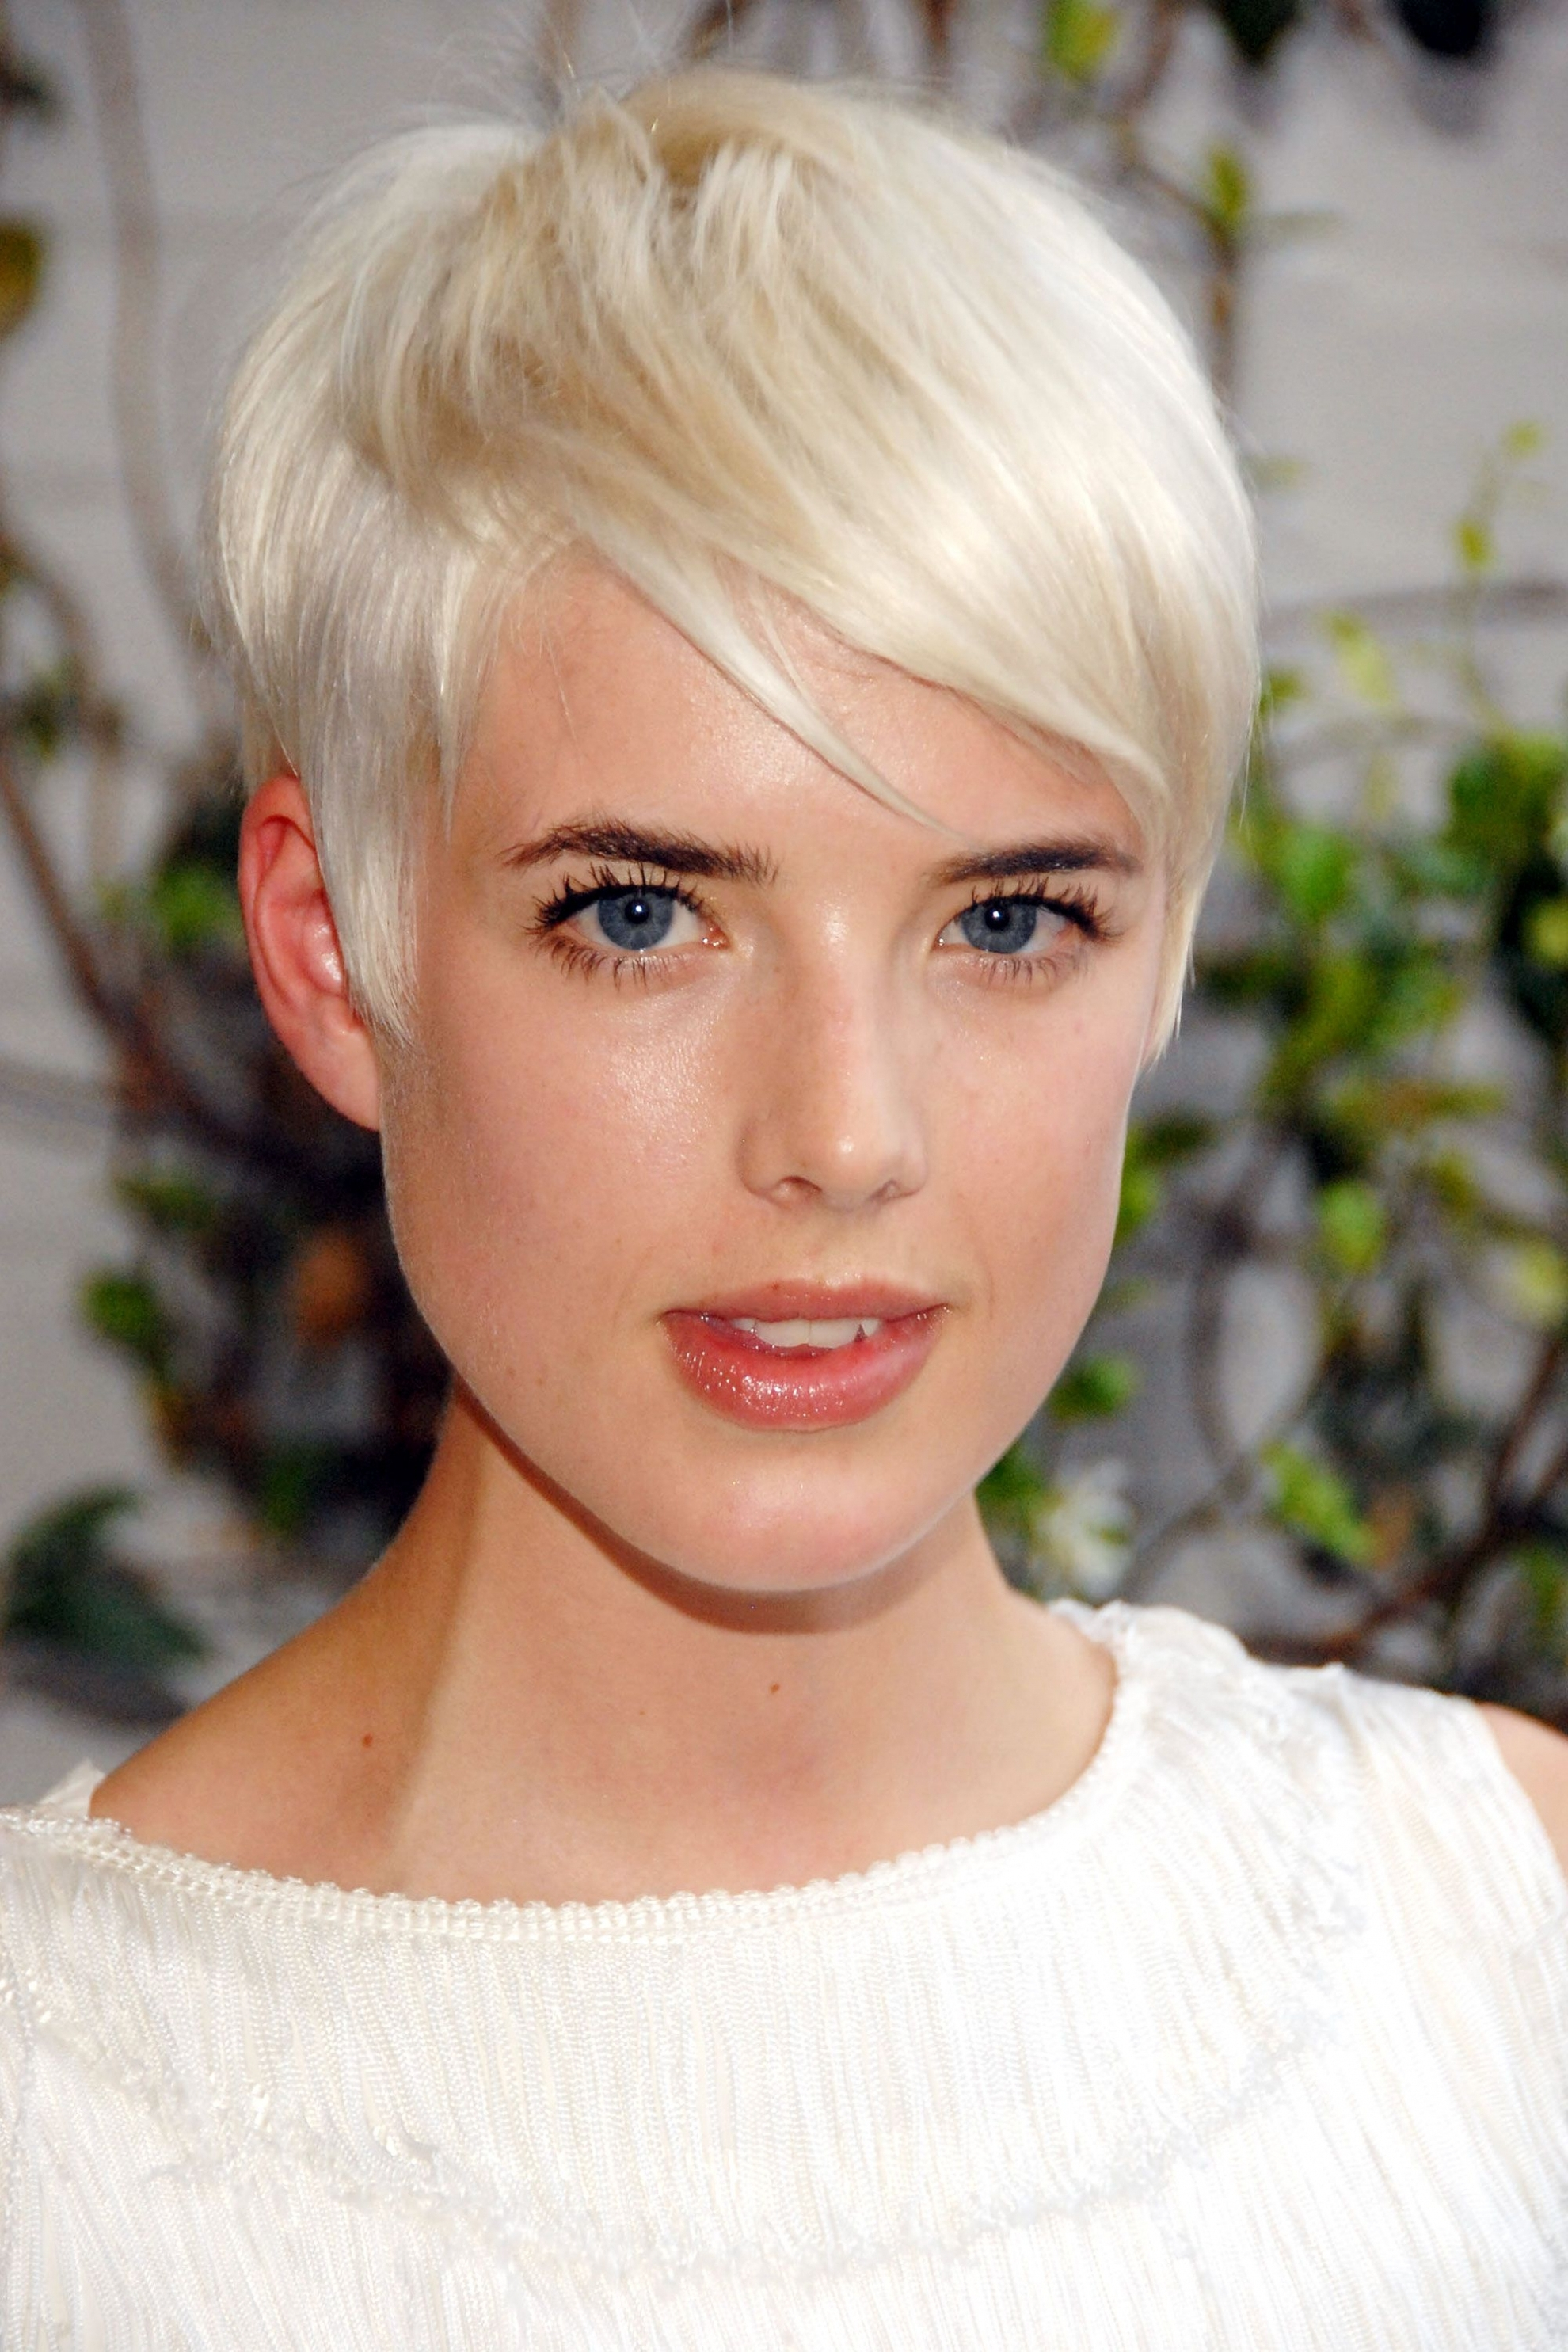 Hairstyles ~ 40 Pixie Cuts We Love For 2017 Short Pixie Hairstyles Regarding Best And Newest Short Blonde Pixie Hairstyles (View 5 of 15)